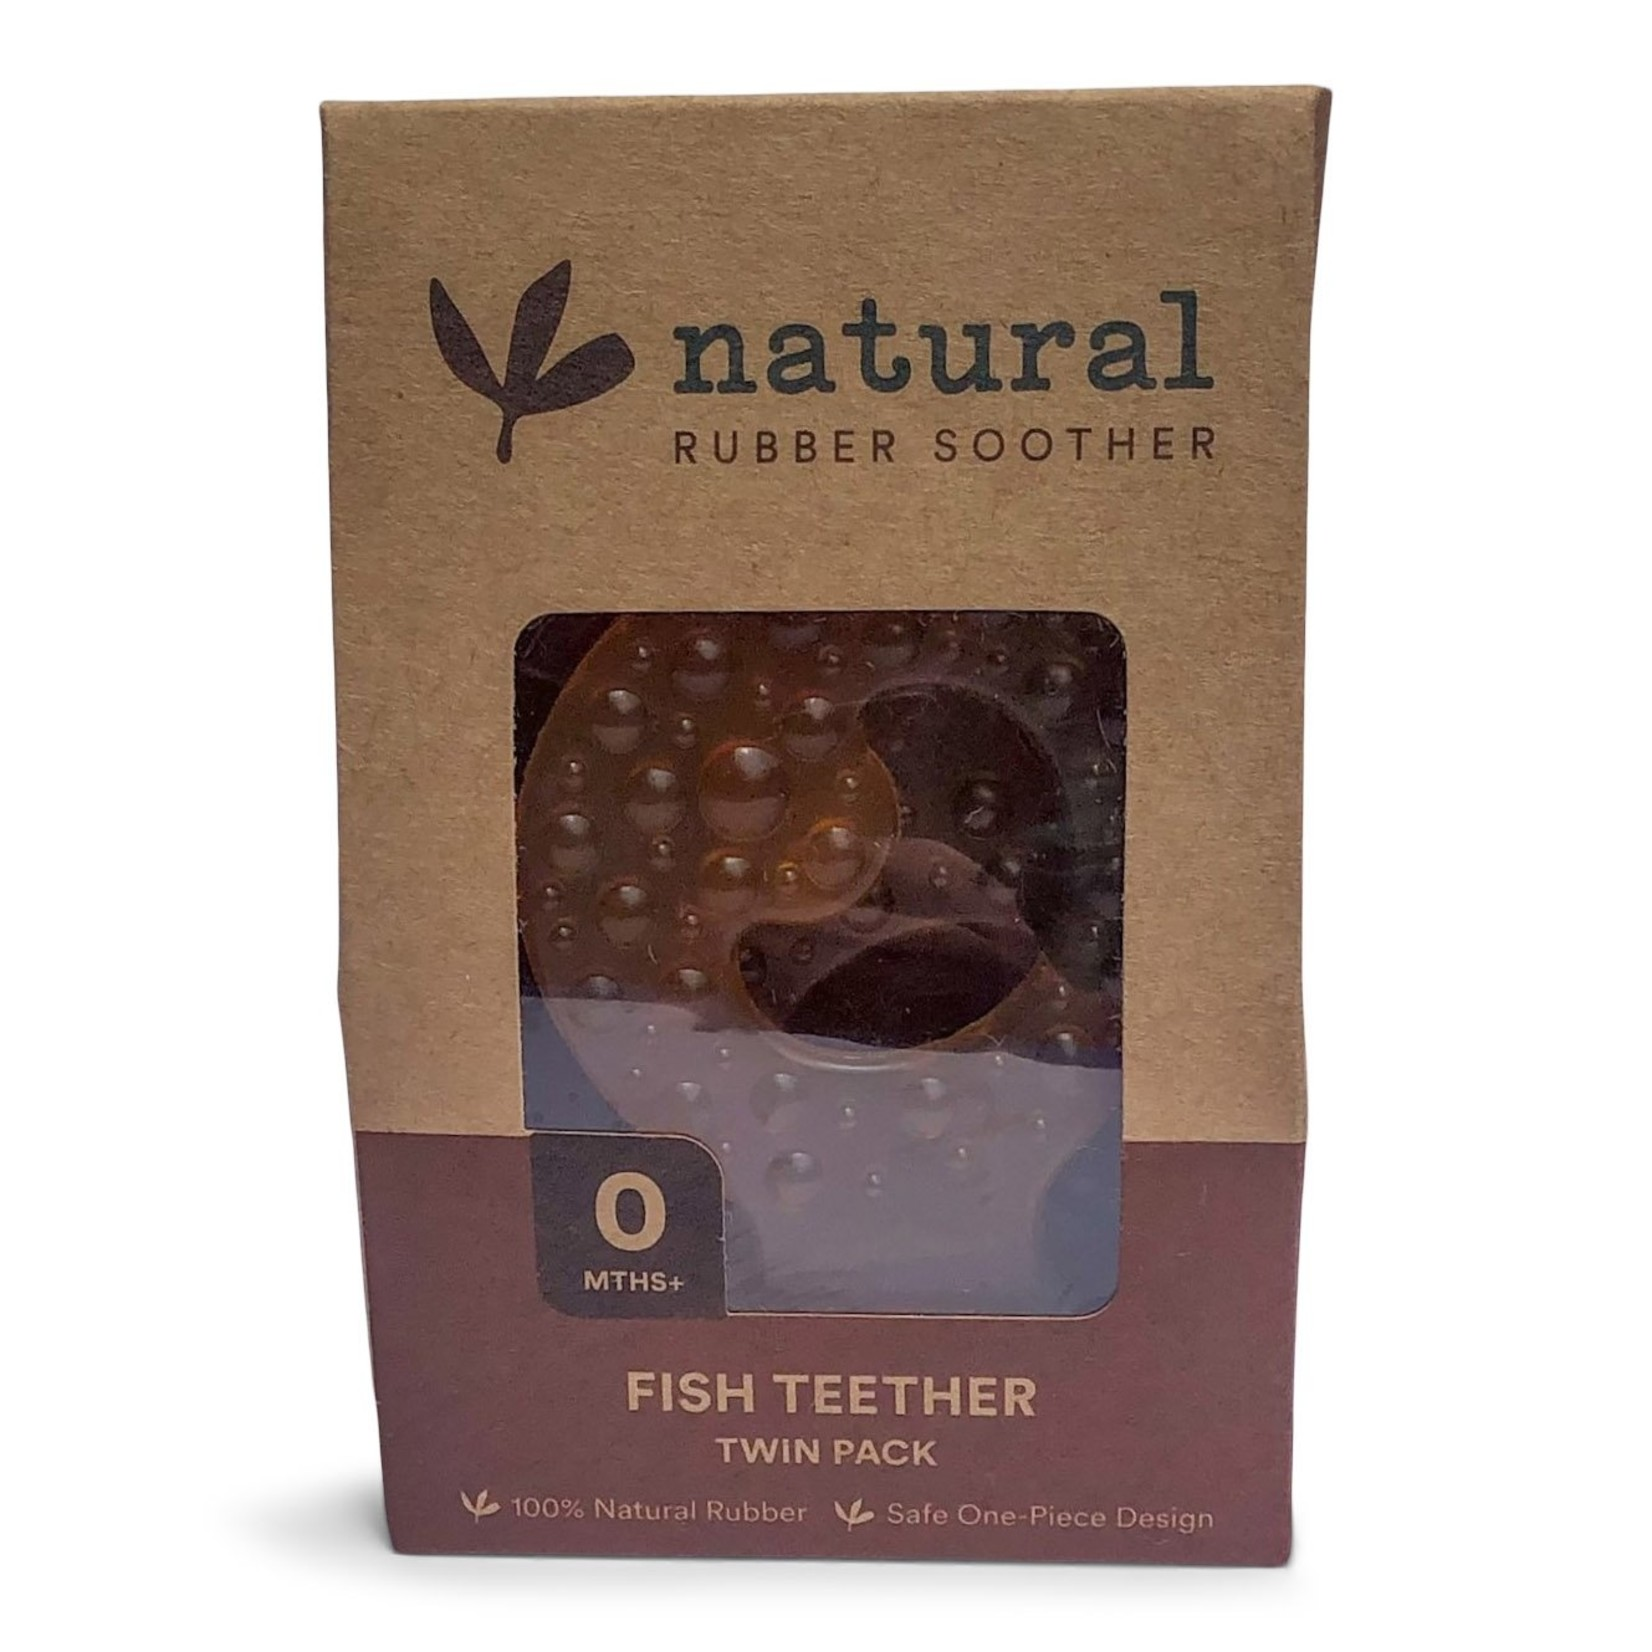 Natural Rubber Soother Natural Rubber Soother Fish Teether Twin Pack